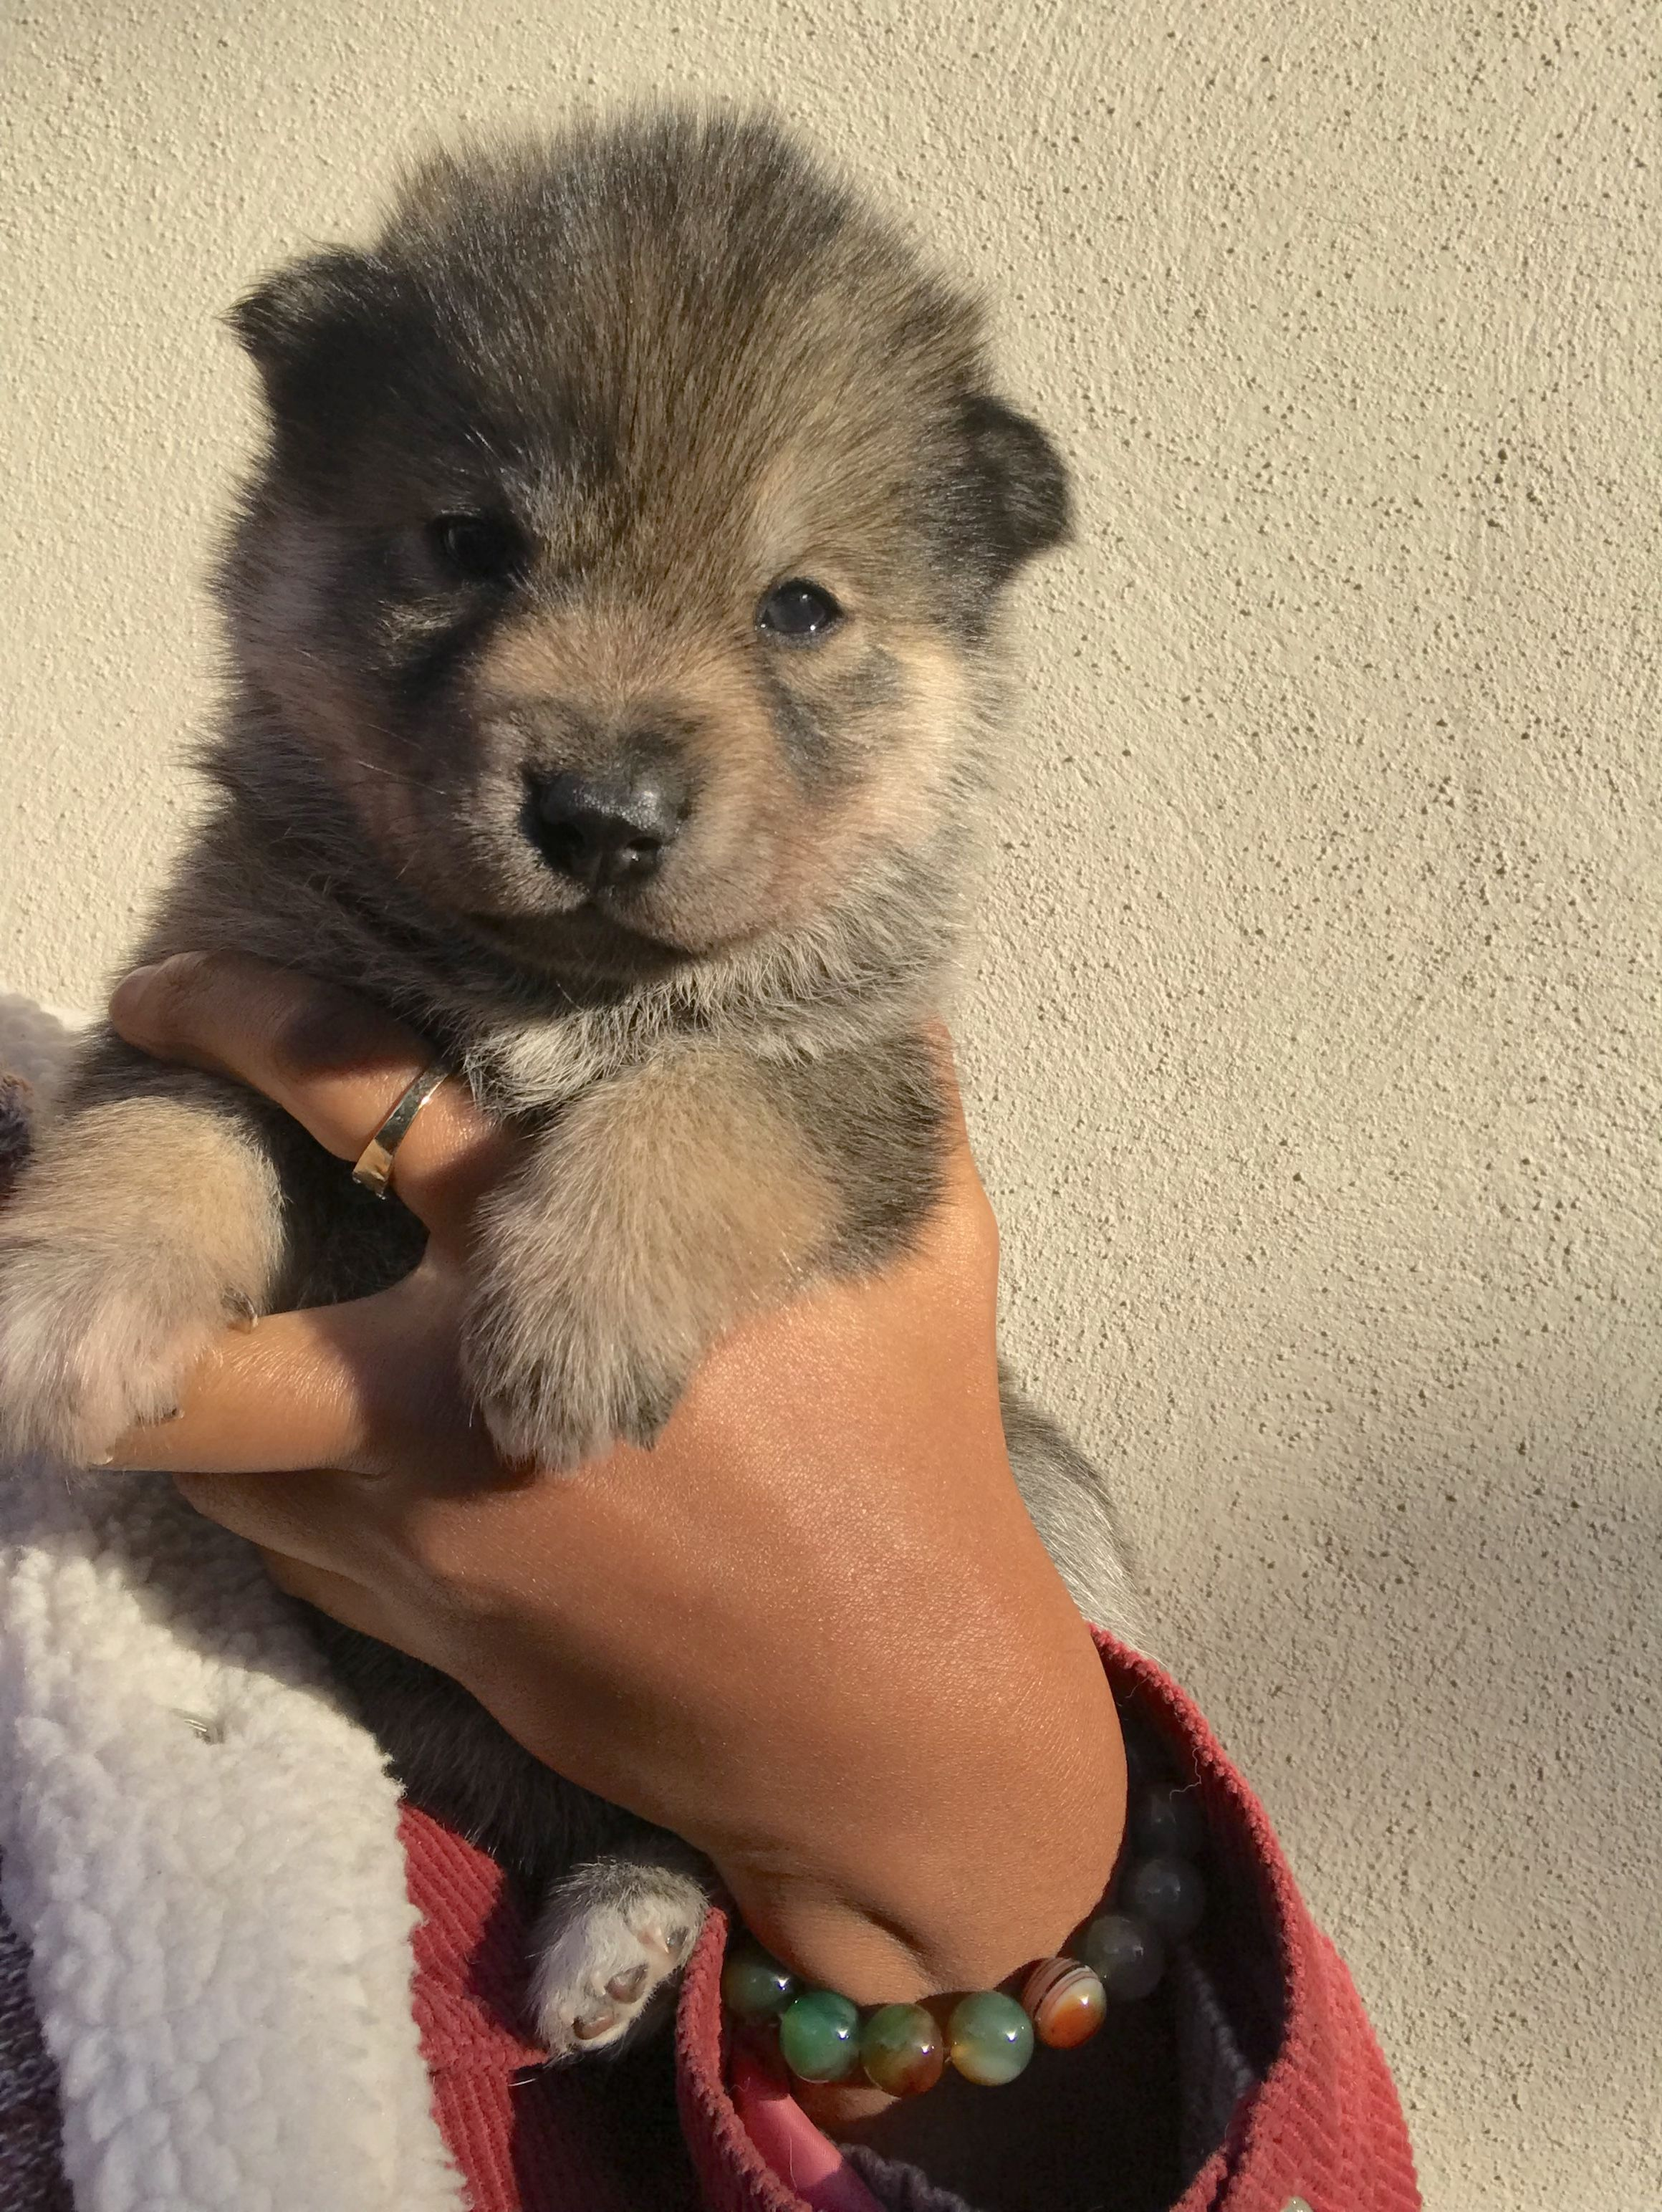 Kodak A Female Wolamute Puppy For Sale In Oakland California Find Cute Wolamute Puppies And Breeders At Vippupp Baby Animals Funny Puppies Puppies For Sale